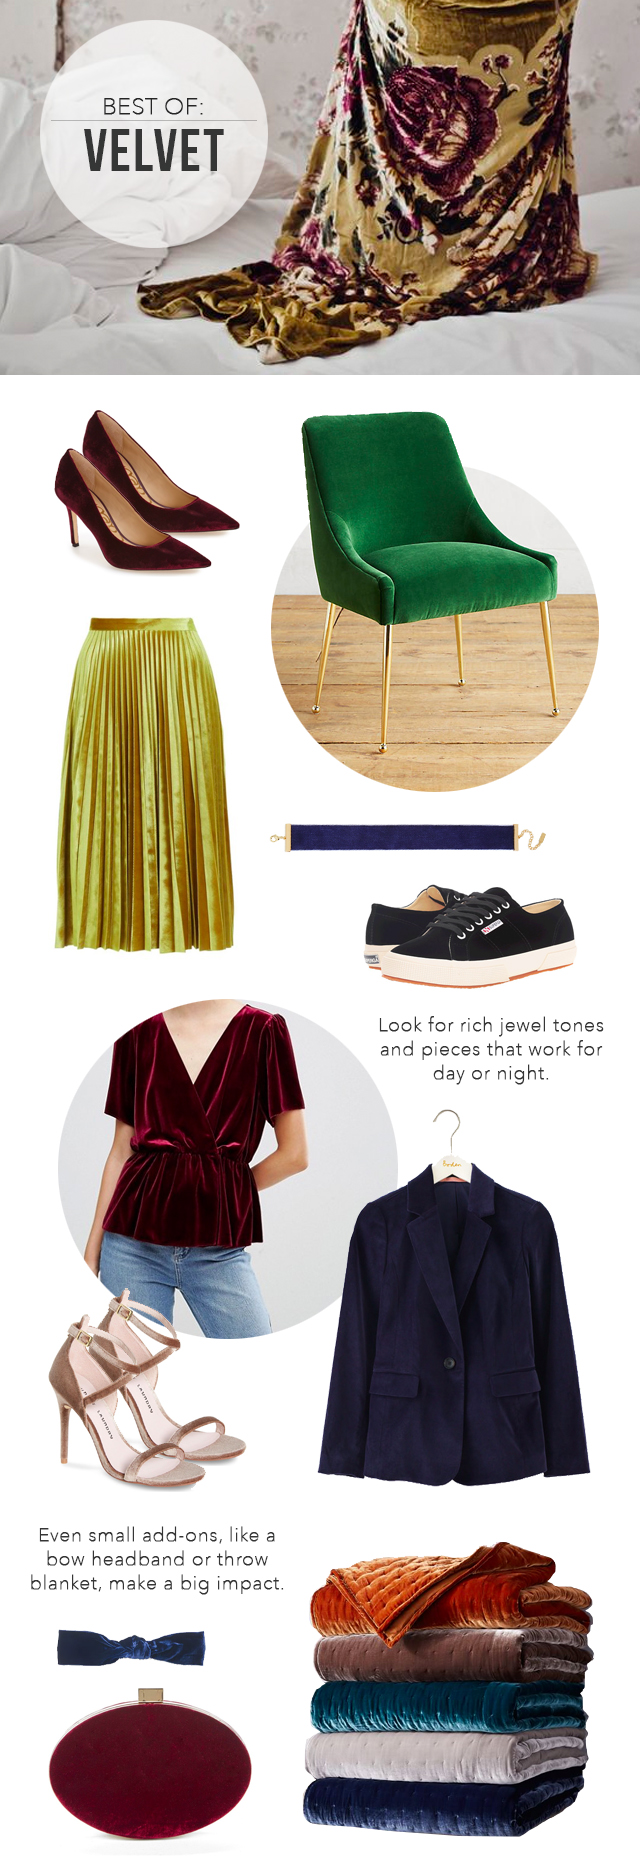 The Steele Maiden: Trend for Fall - Velvet clothing, shoes and home decor